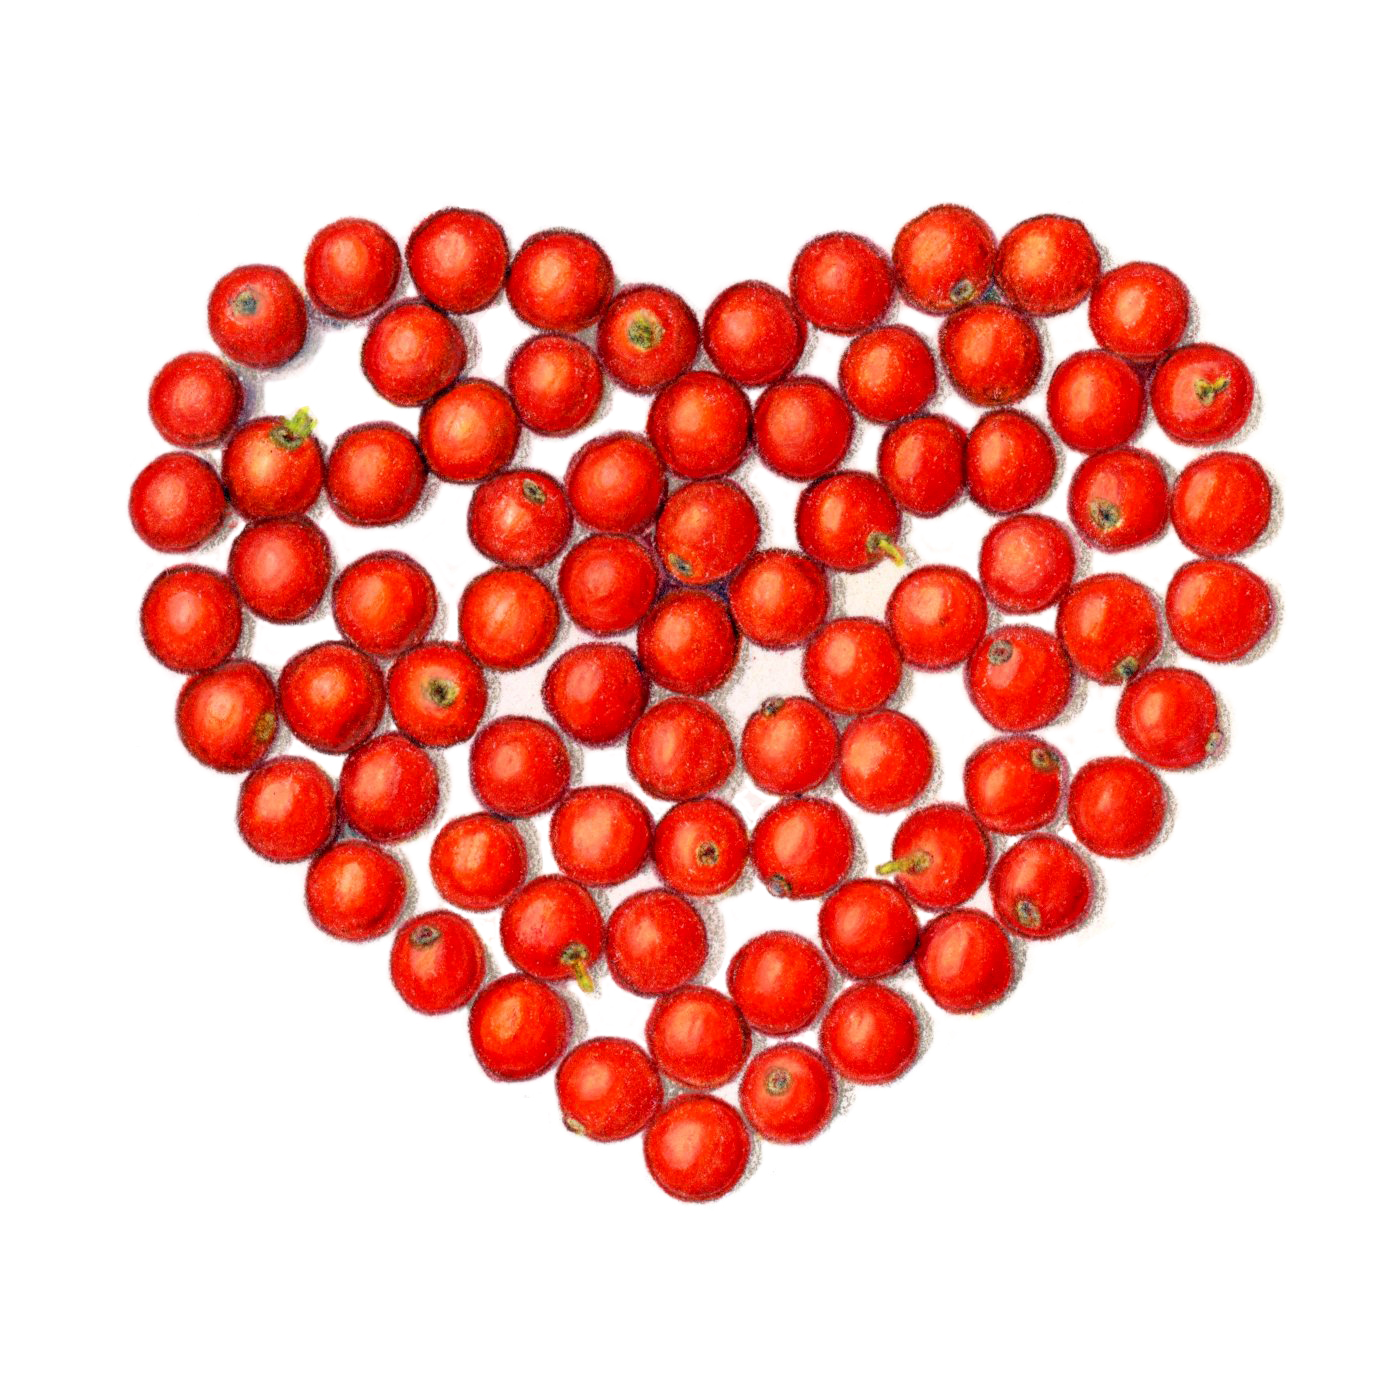 Heart_HollyBerries_crop.jpg